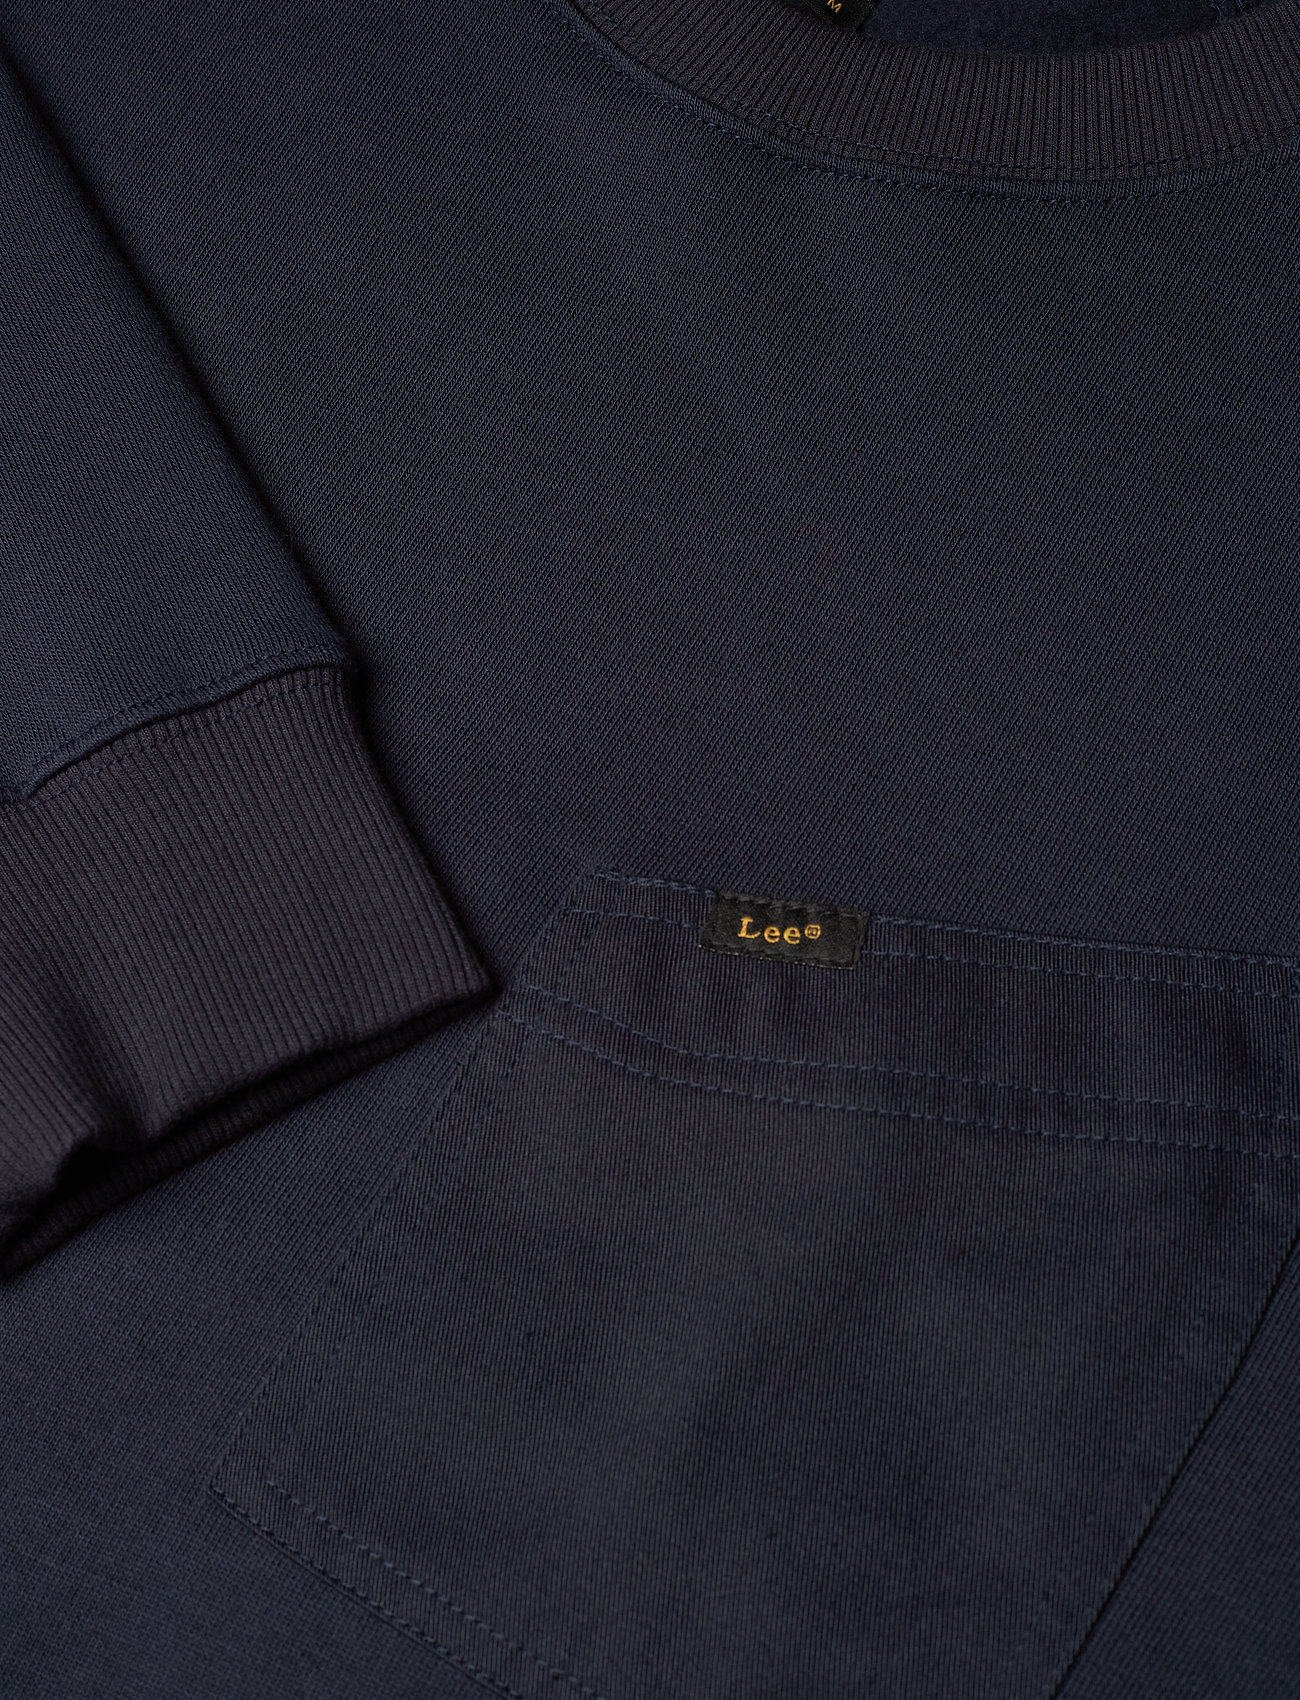 Crew Woven Pocket Sw (Sky Captain) (79.95 €) - Lee Jeans JxaHN